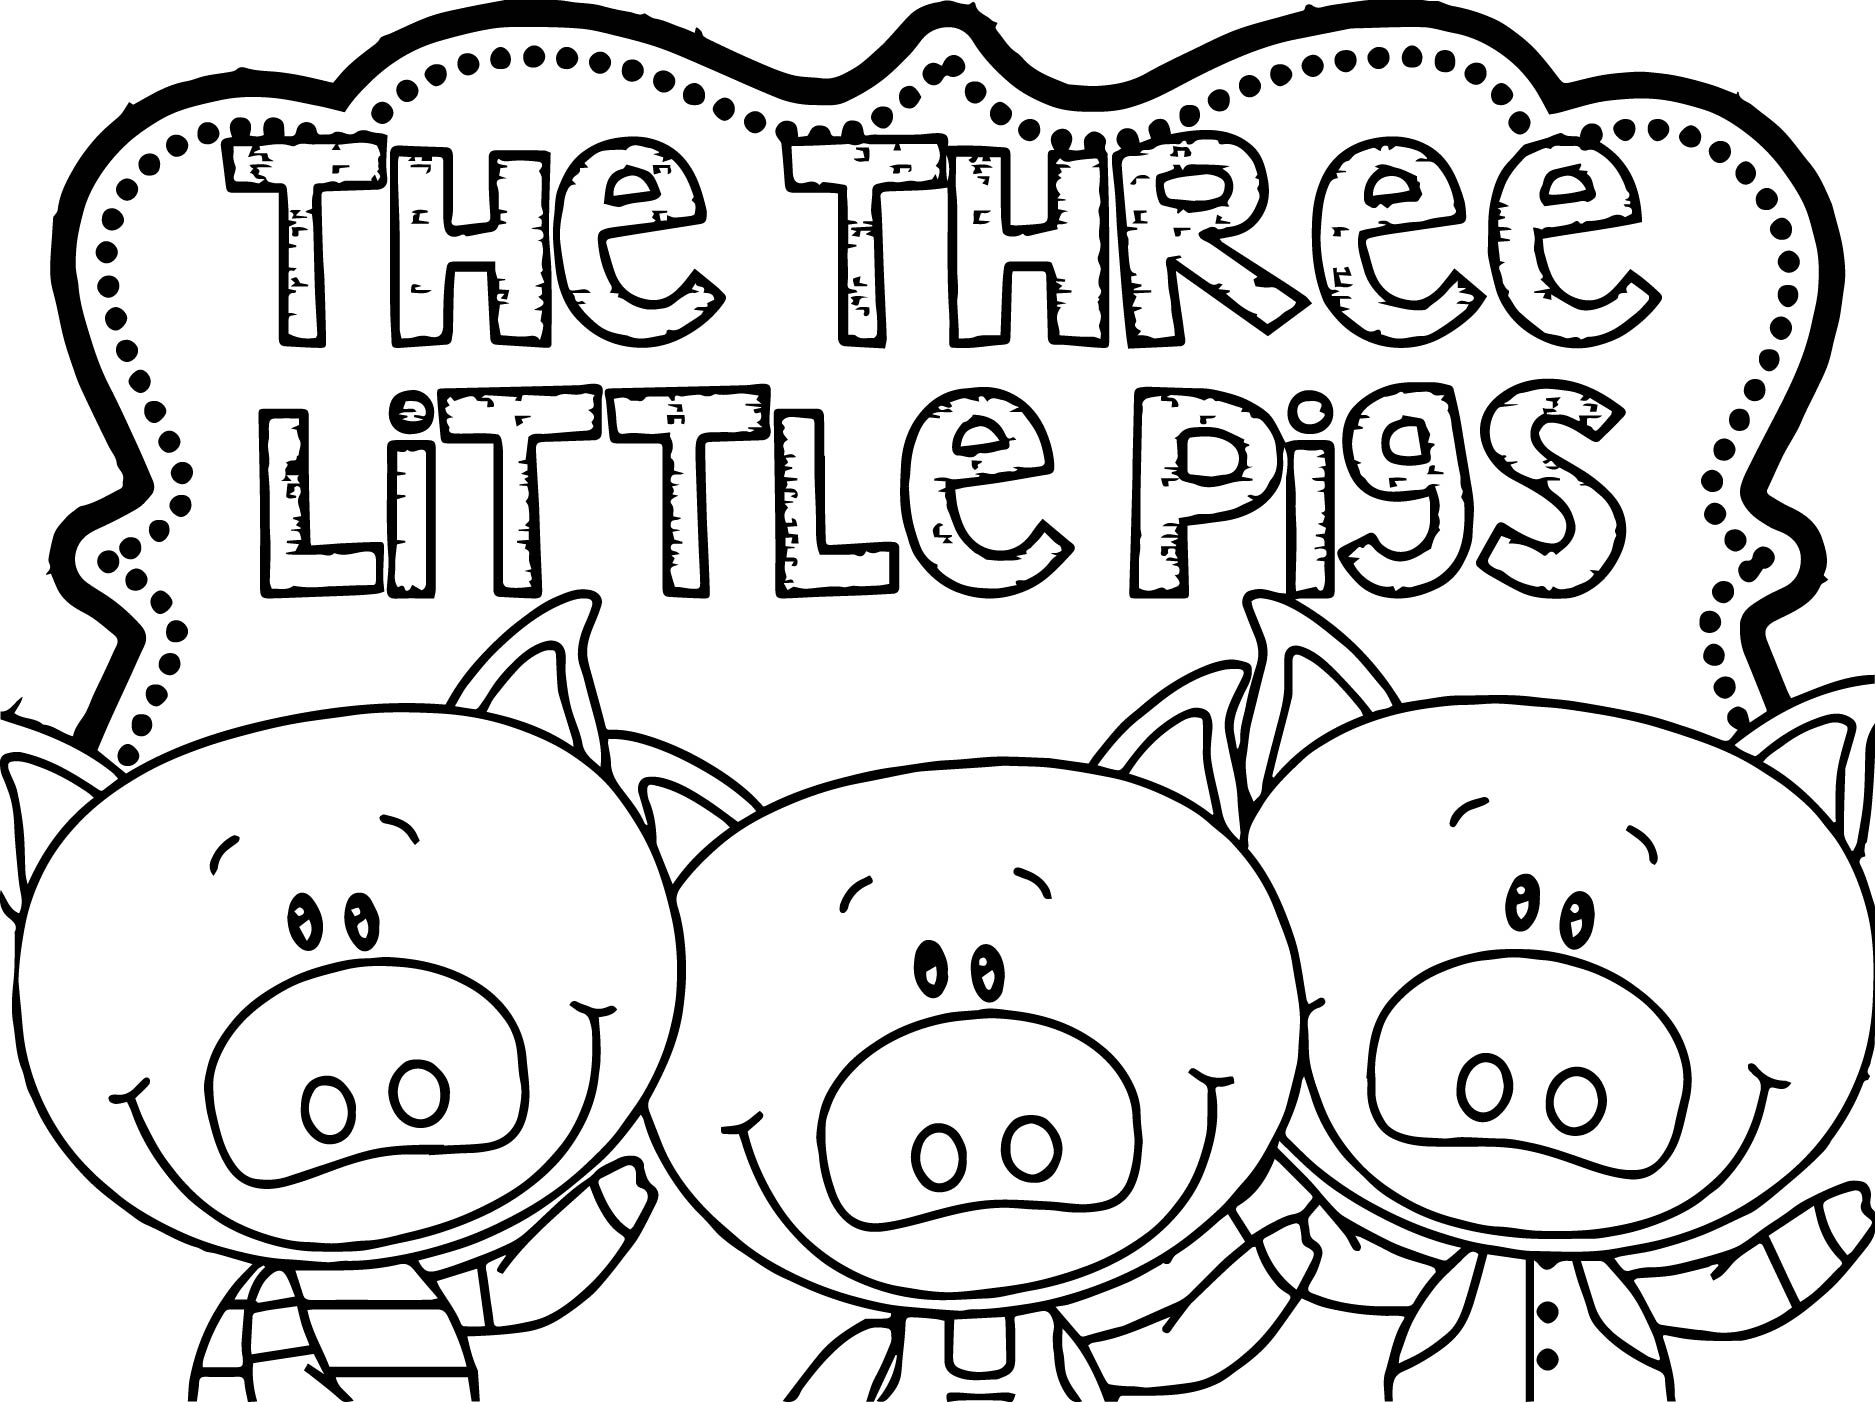 Pig Coloring Pages For Adults At Getdrawings